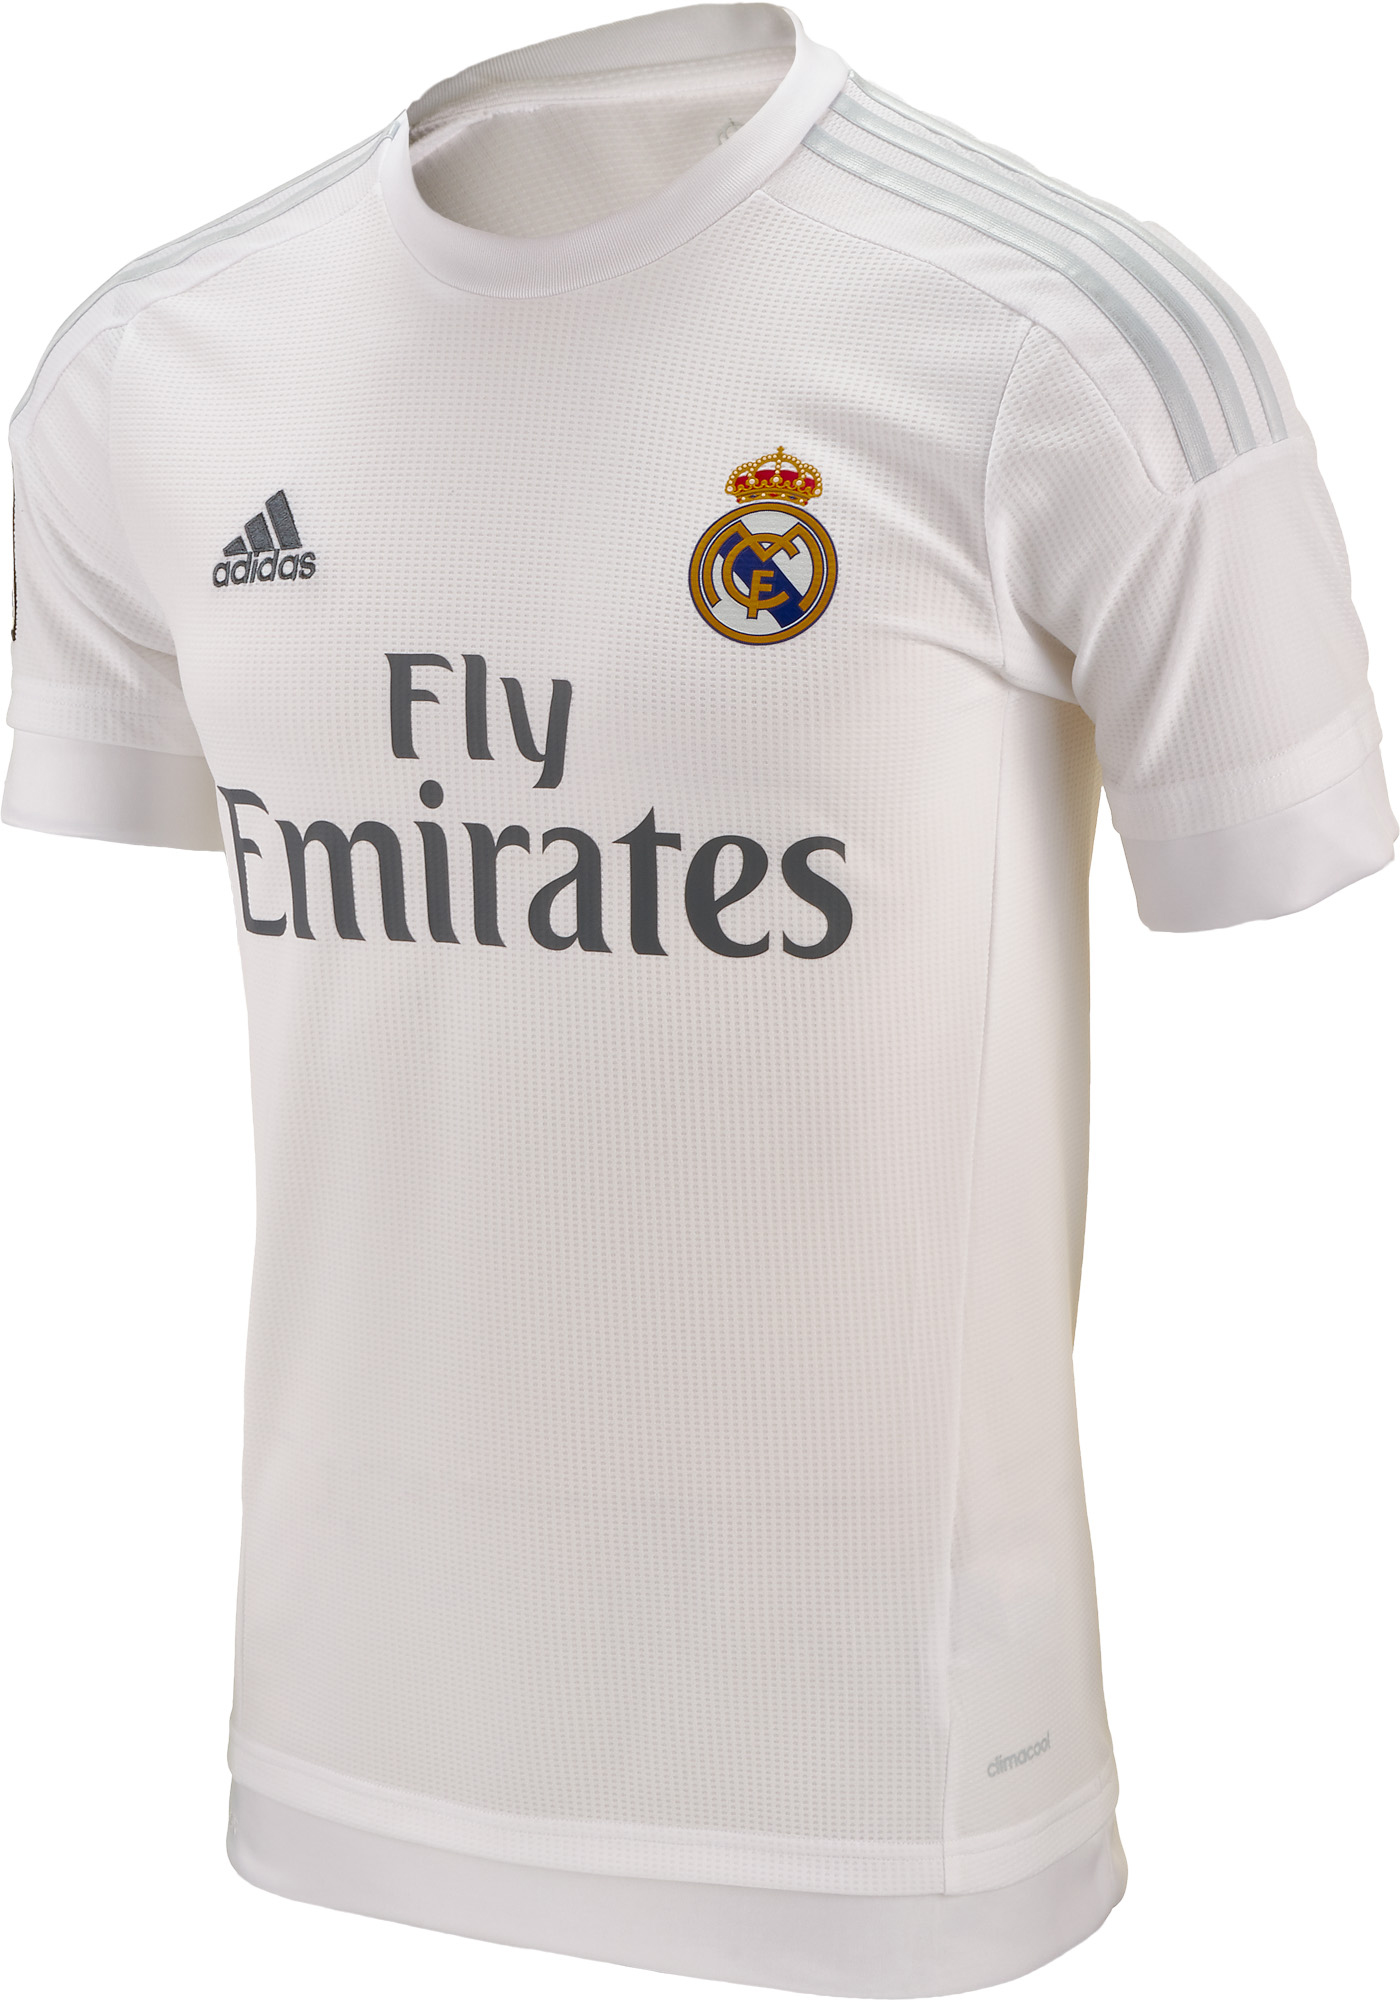 ad6e12ac1db adidas Kids Real Madrid Jersey - 2015 16 Real Madrid Home Jersey